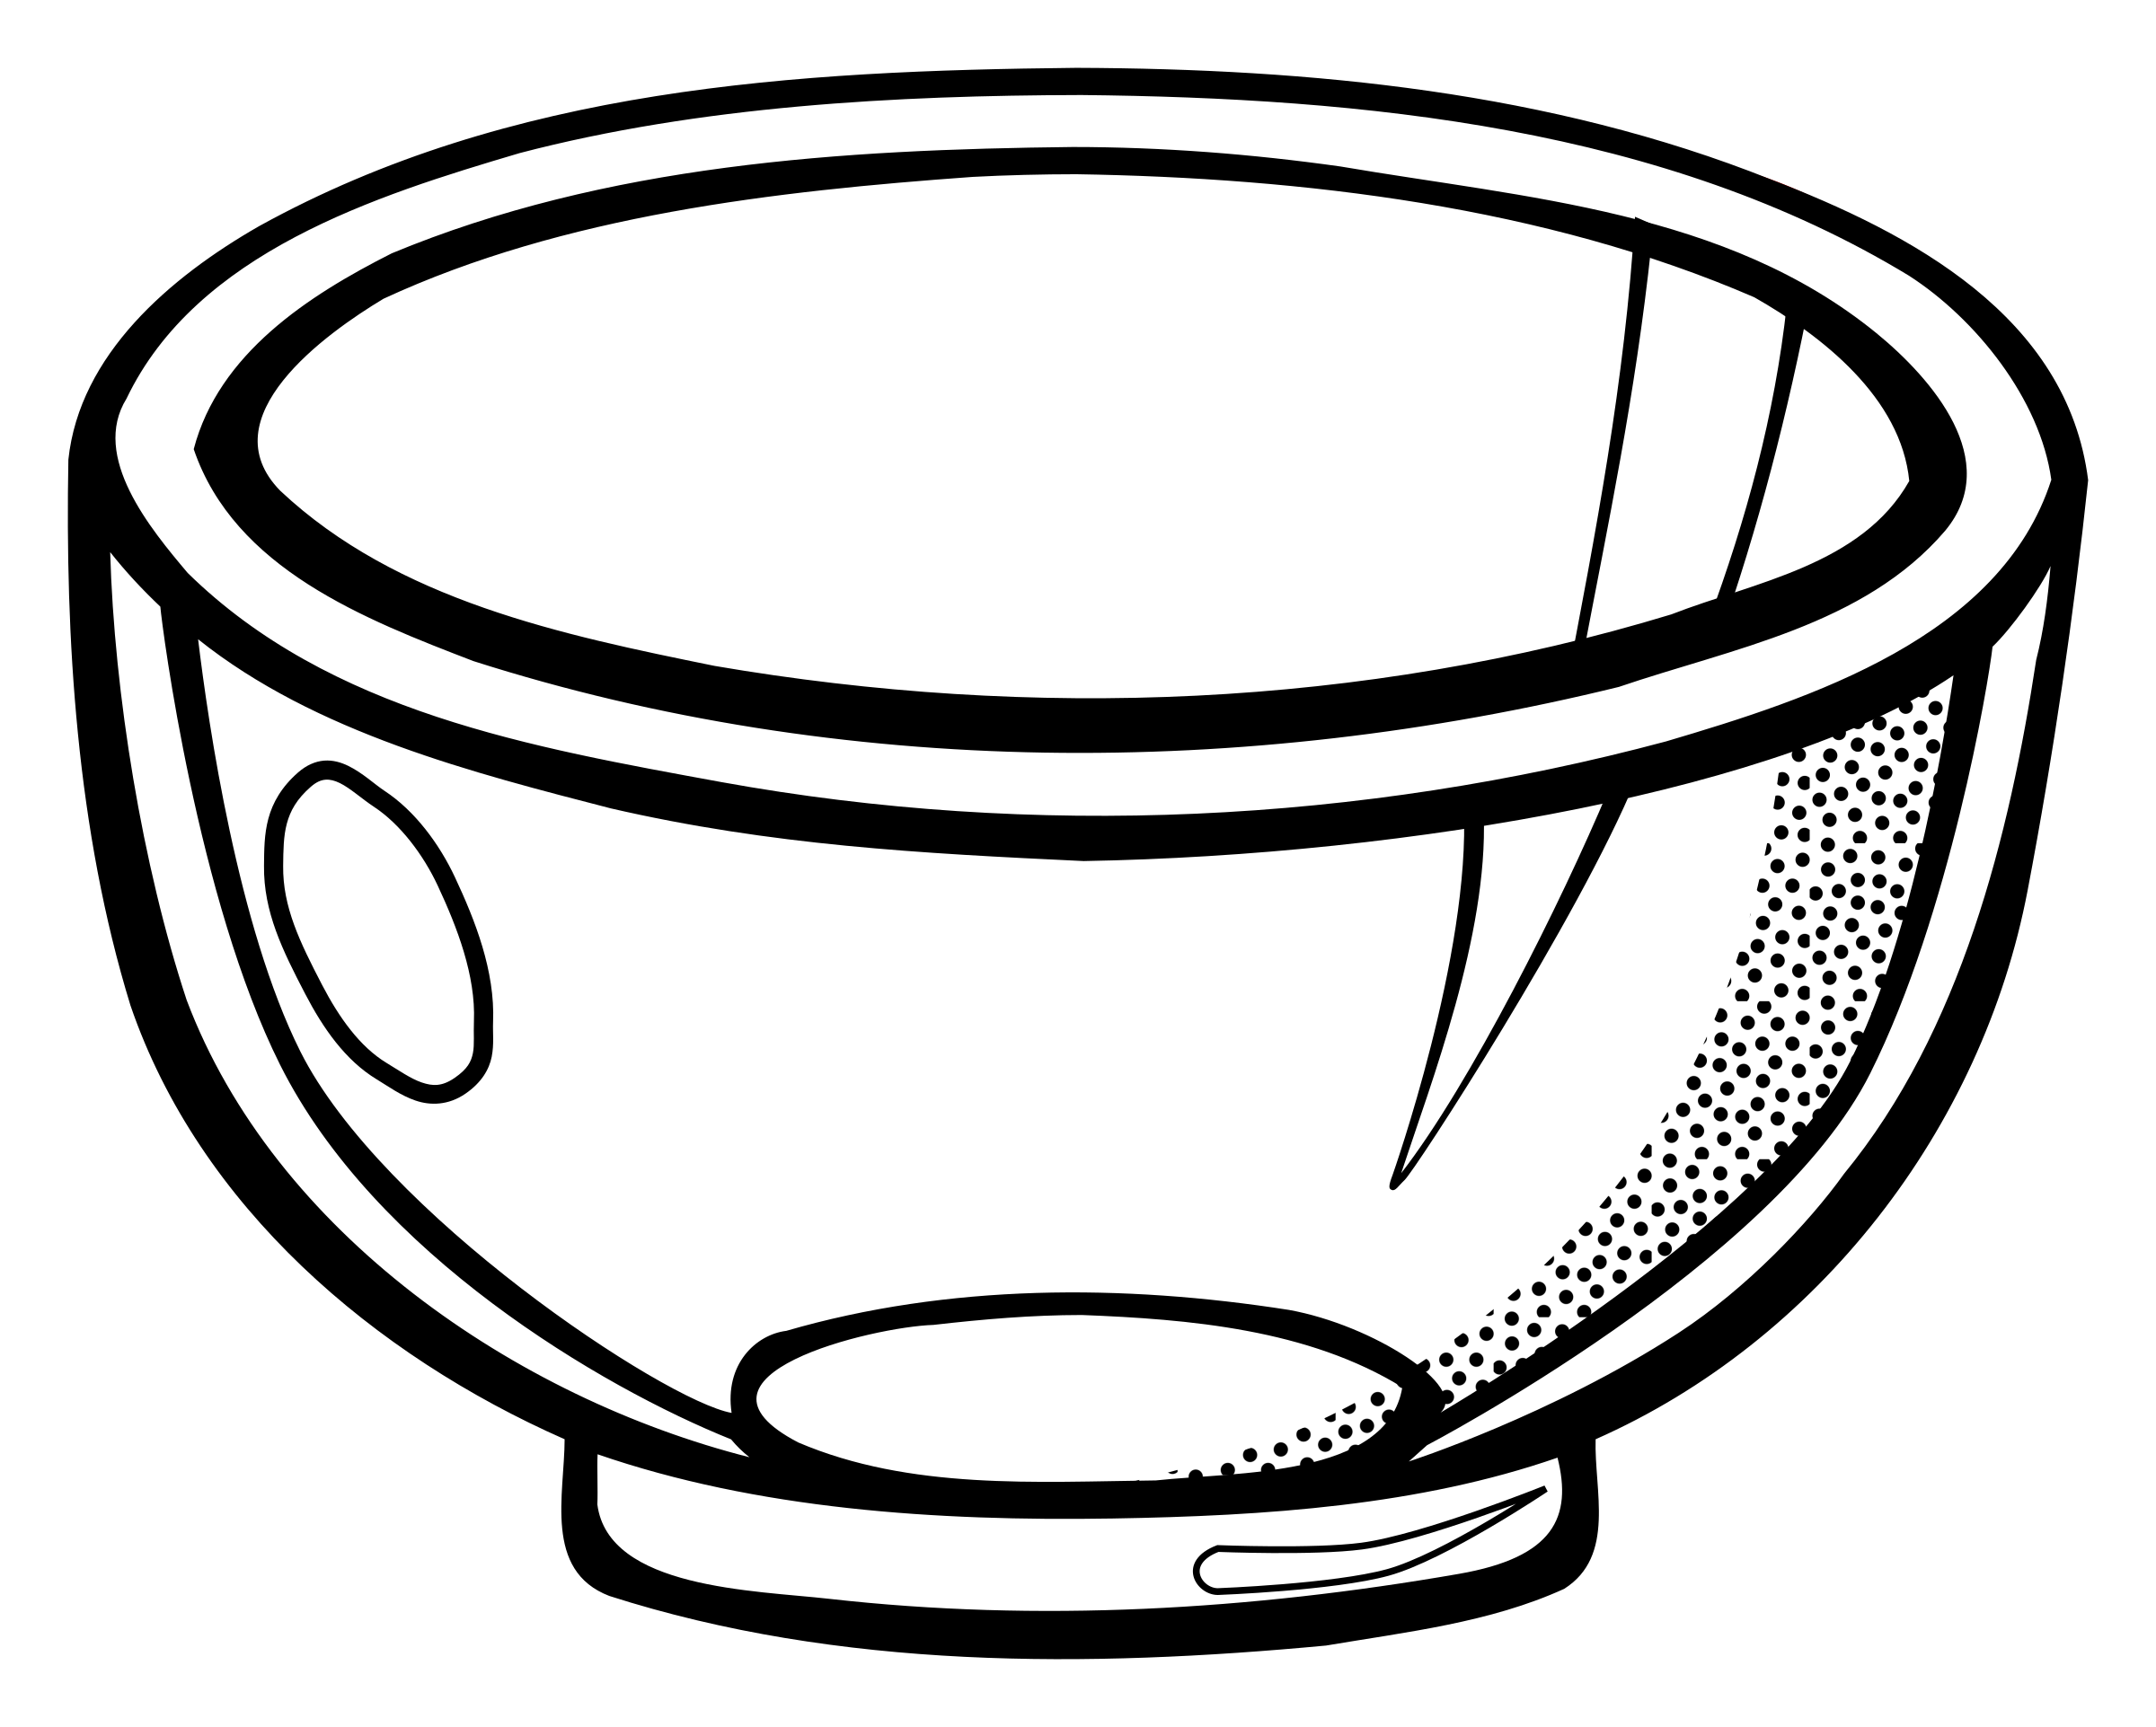 Bowl clipart draw, Bowl draw Transparent FREE for download.